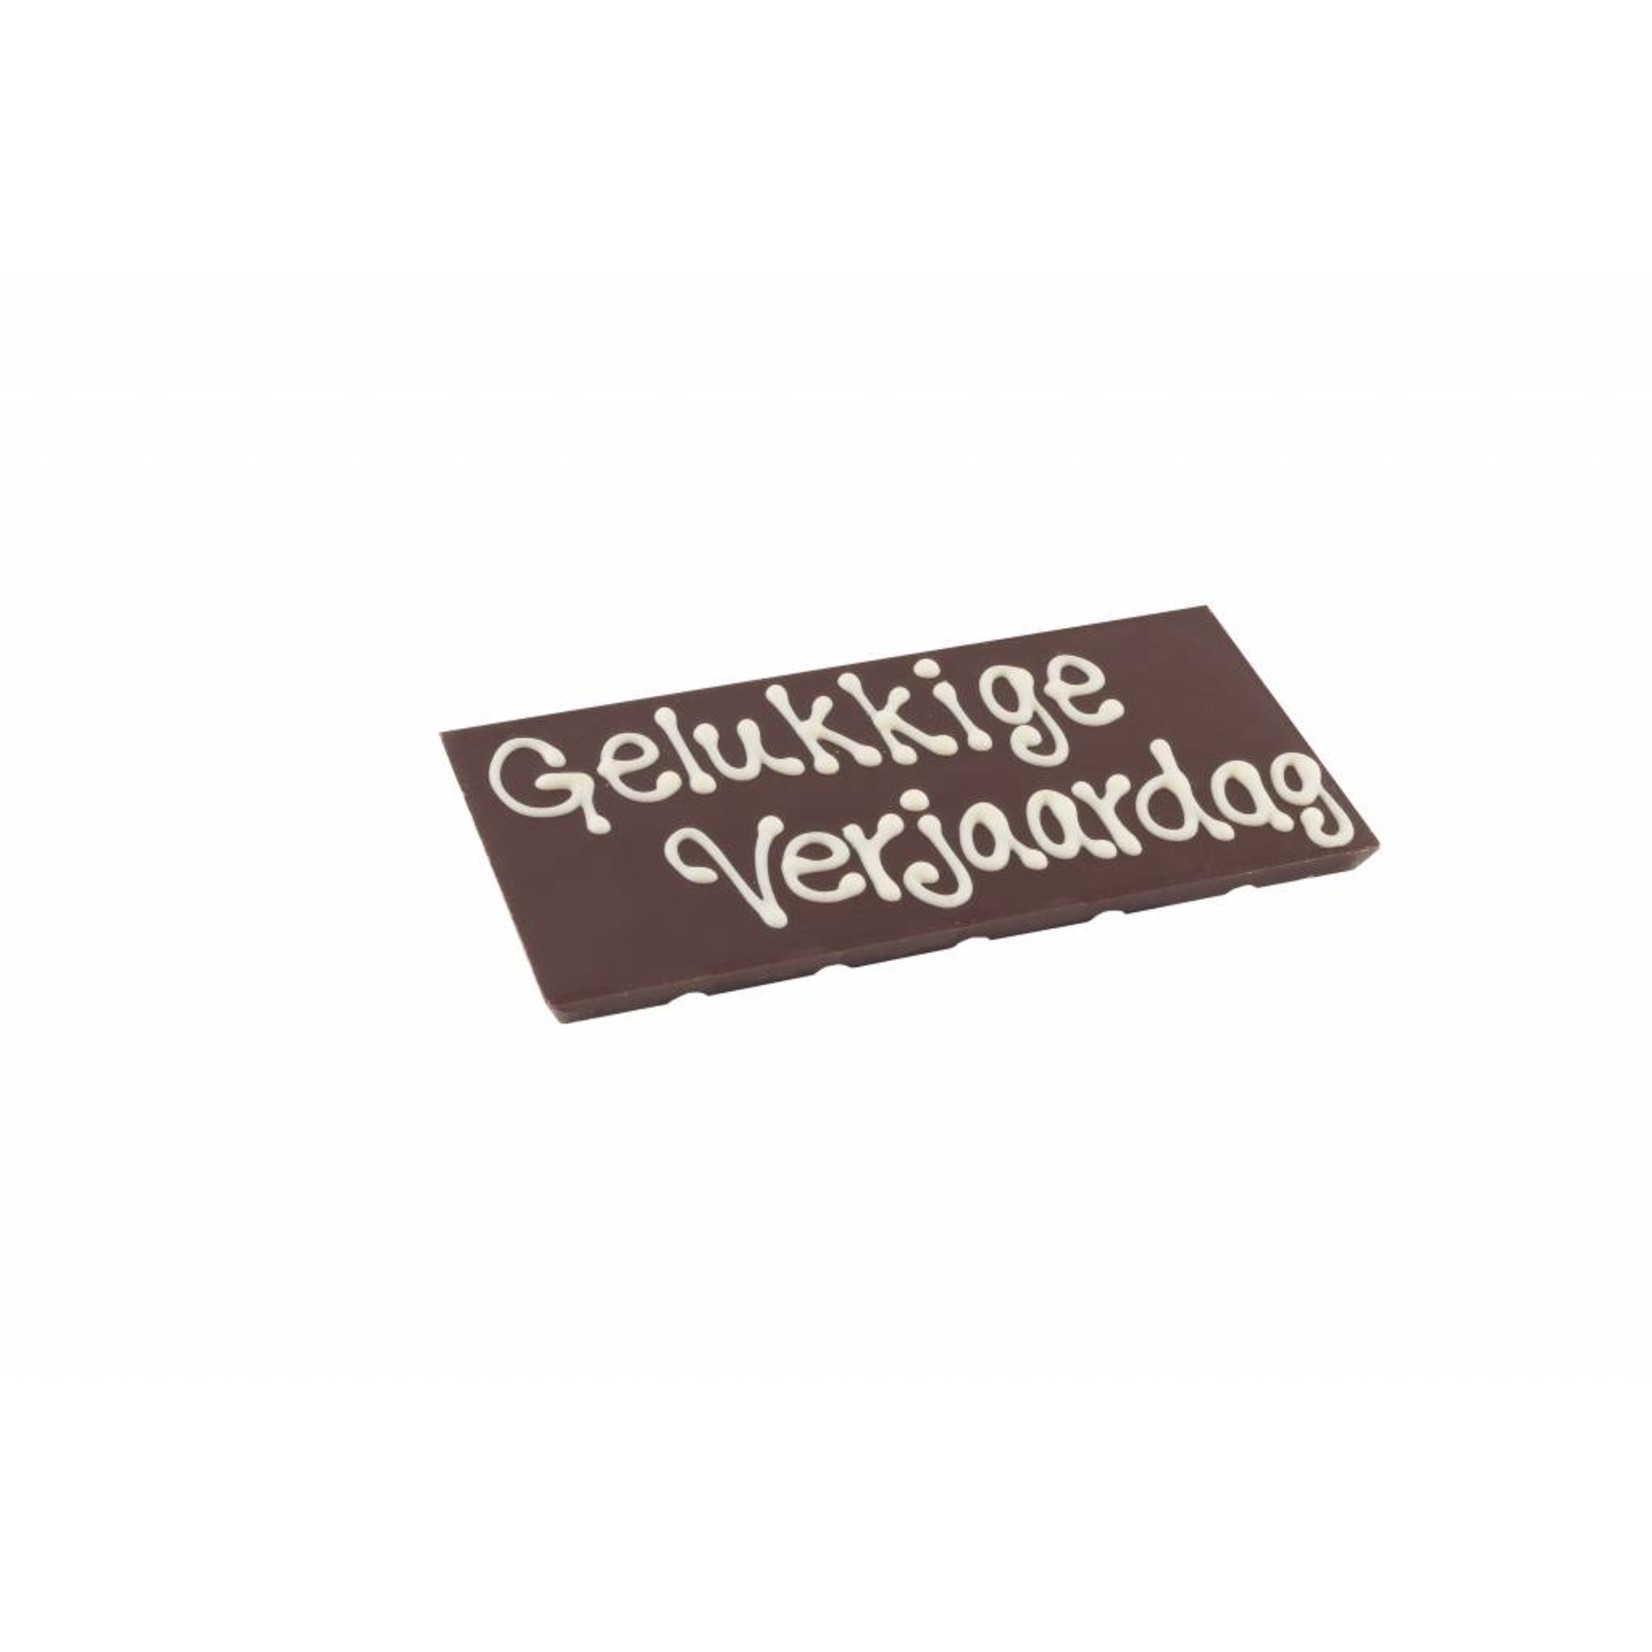 Message on a bar with chocolate text